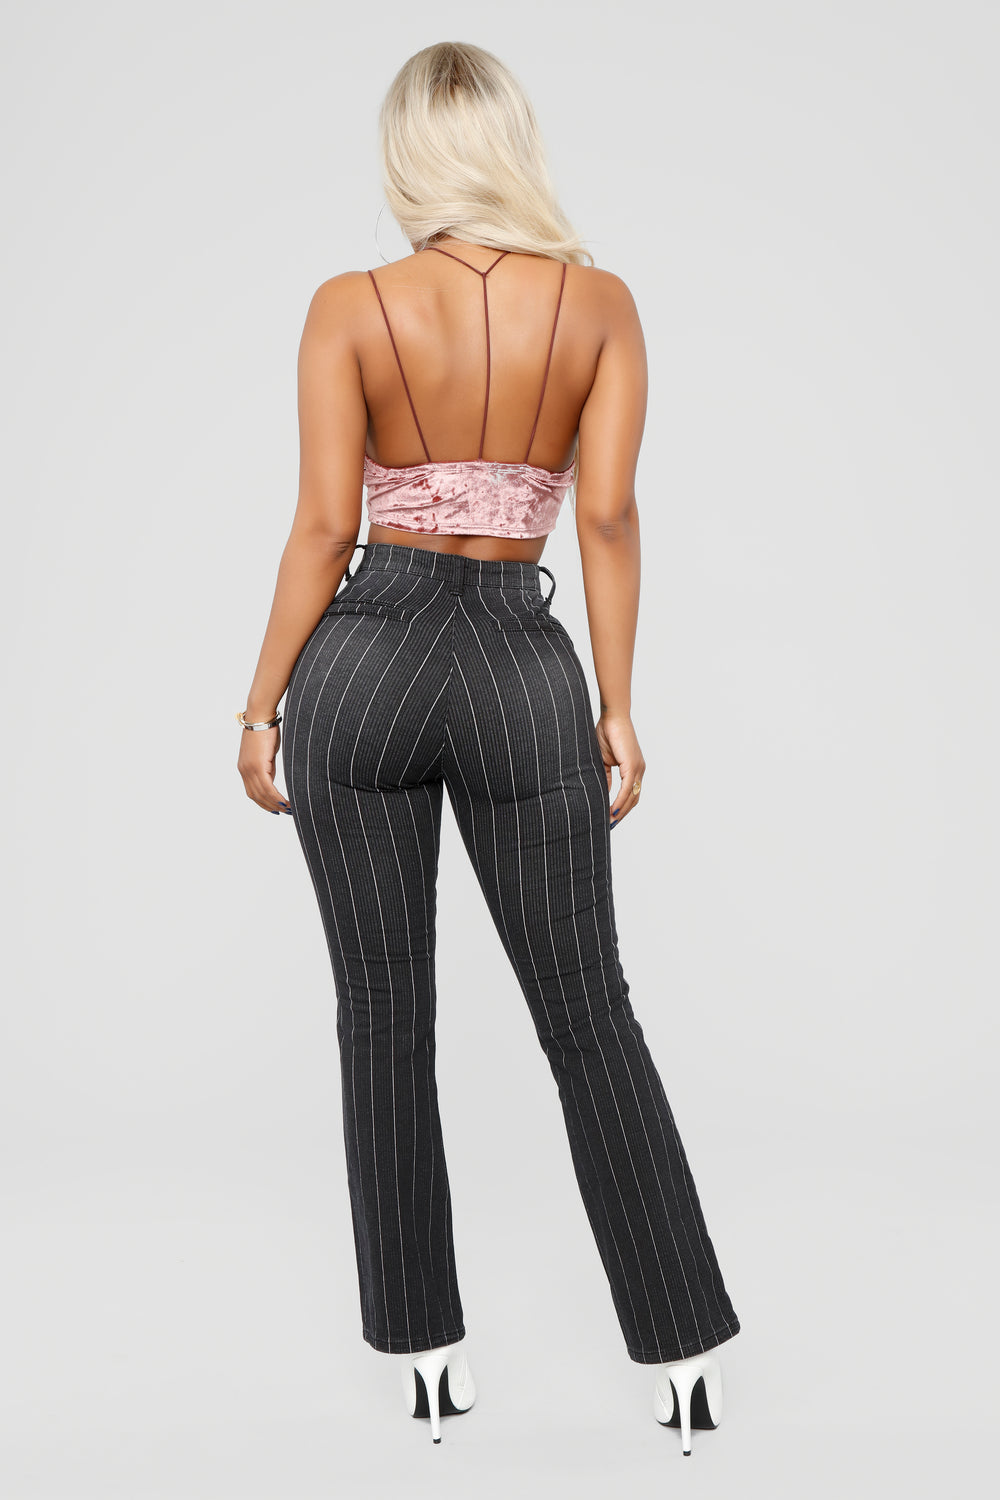 Gangster Of Love Pin Stripe Flare Jeans - Black